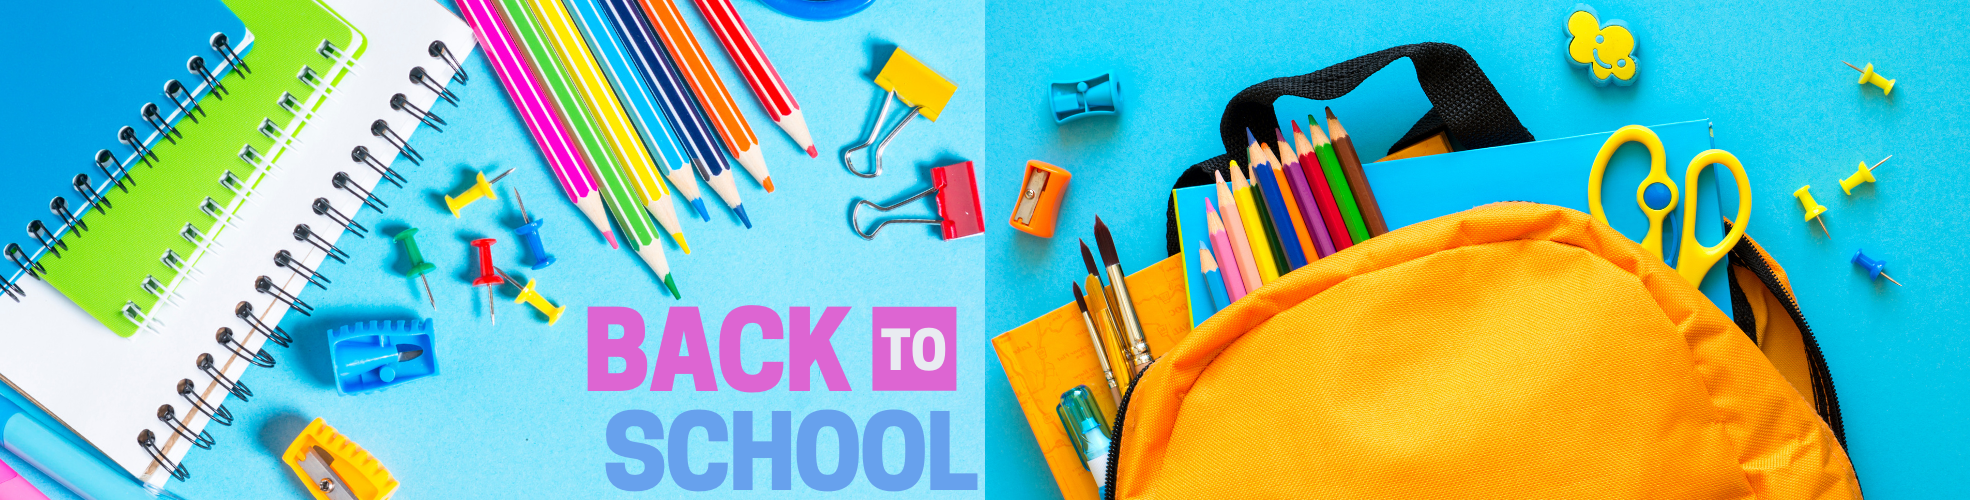 Browse our new selection of wholesale stationery that includes everyday essentials and back to school range.